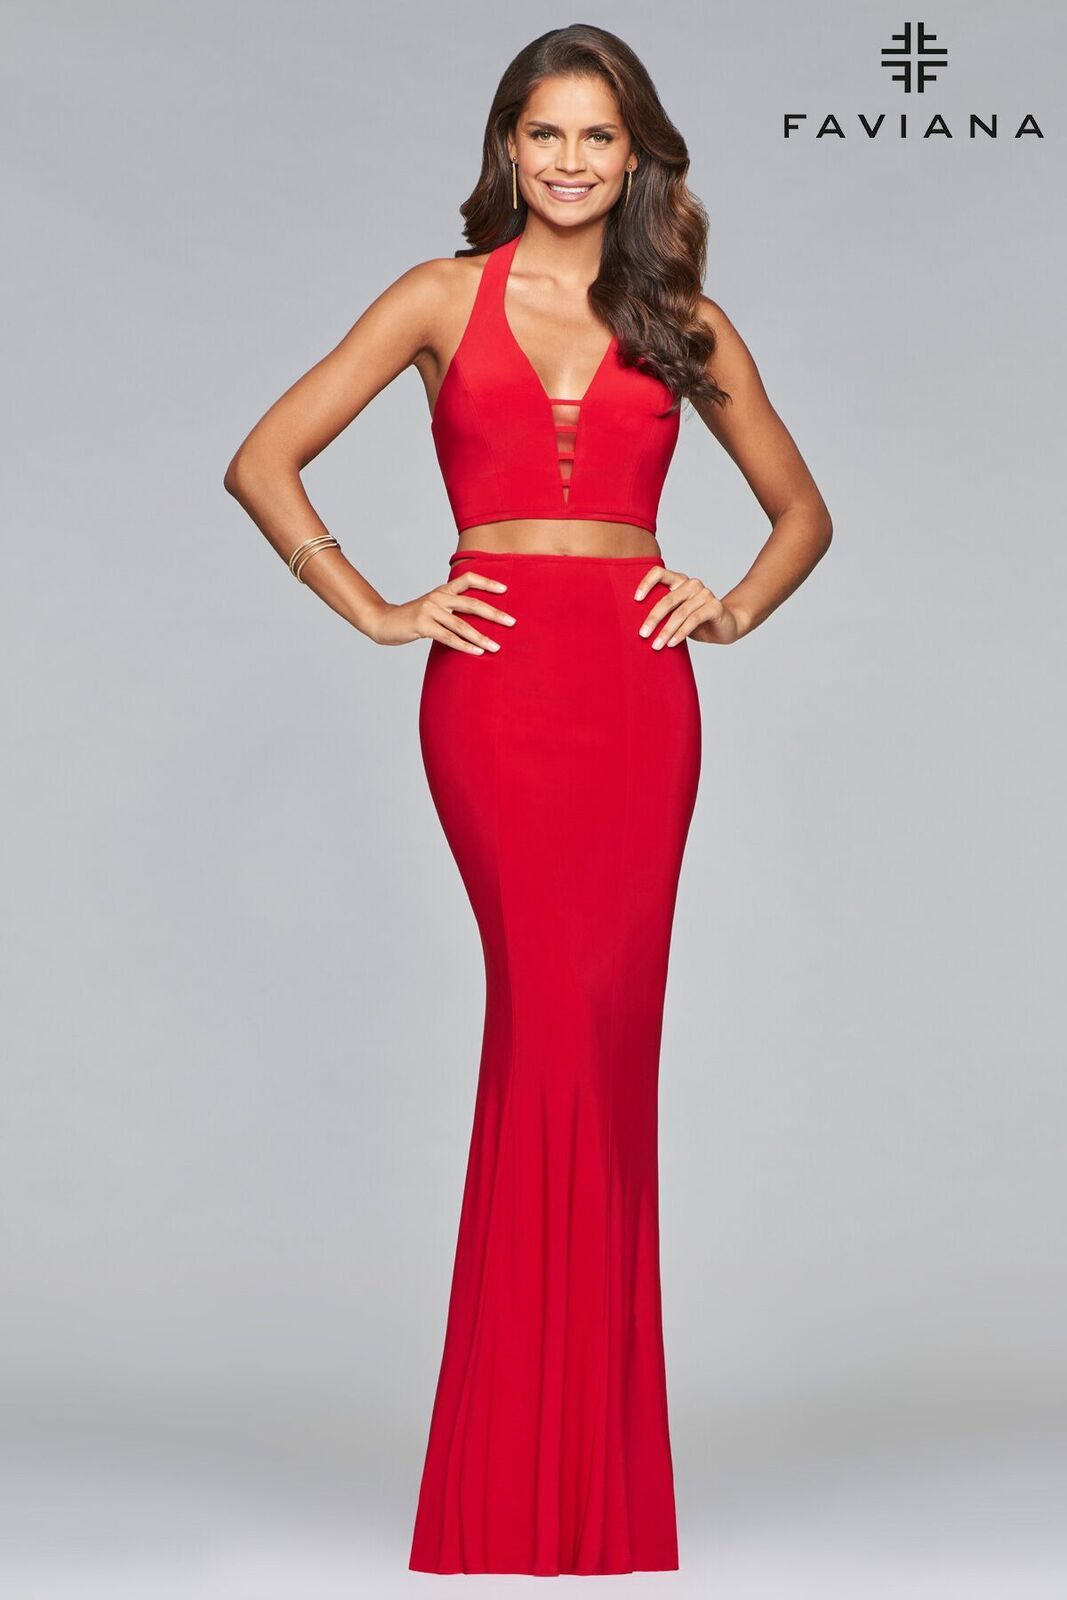 bde56b9e329  Faviana style 10056 is young and sleek. This modern two-piece dress  features a deep v-neck with illusion inserts and a cut out back. This jersey   dress is ...